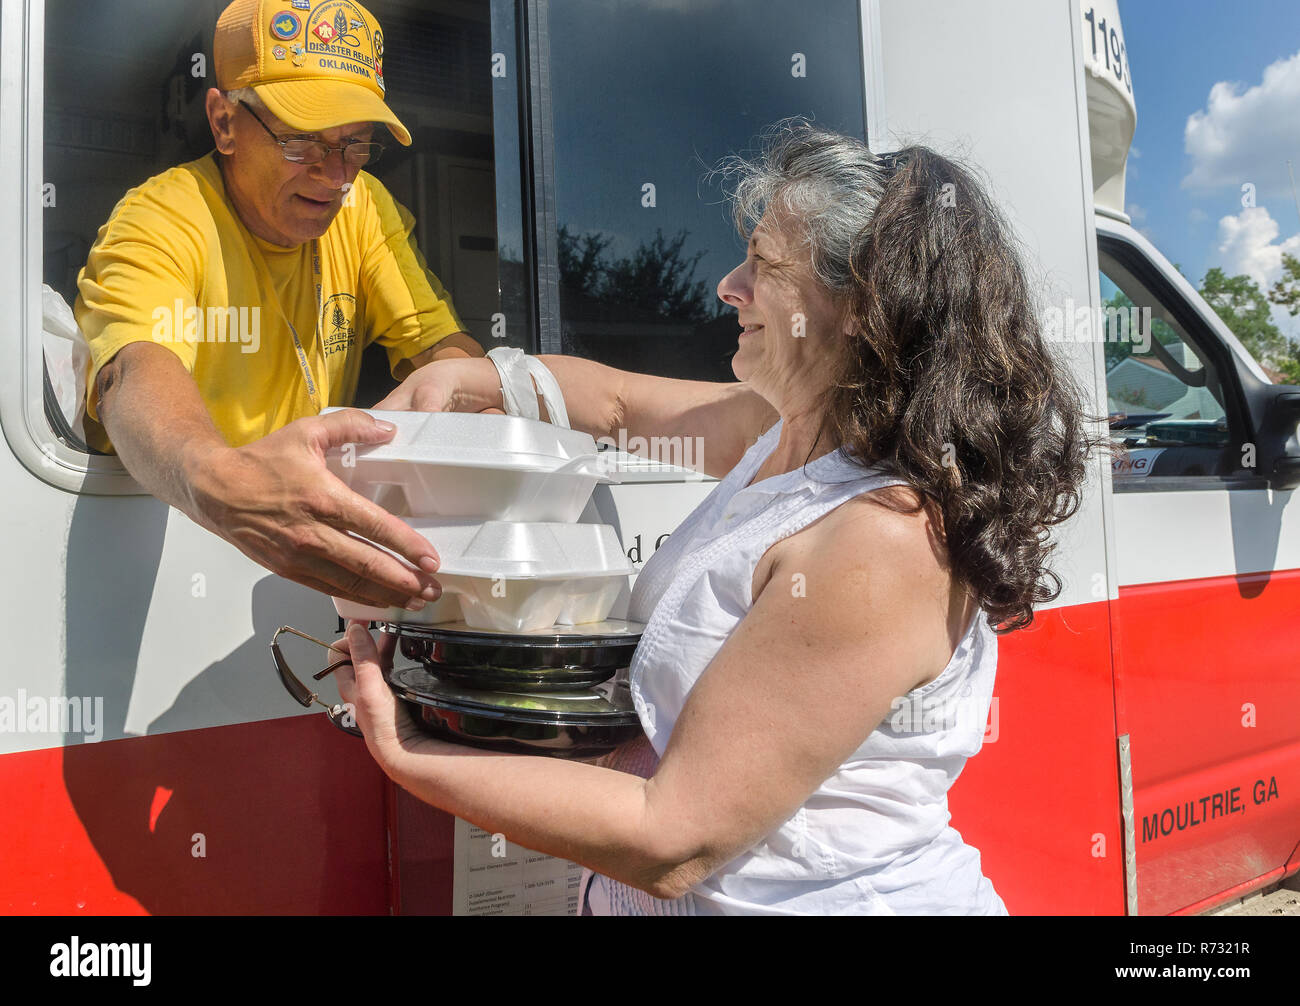 A Southern Baptist Disaster Relief volunteer gives hot meals to a flood victim in Baton Rouge, Louisiana. - Stock Image